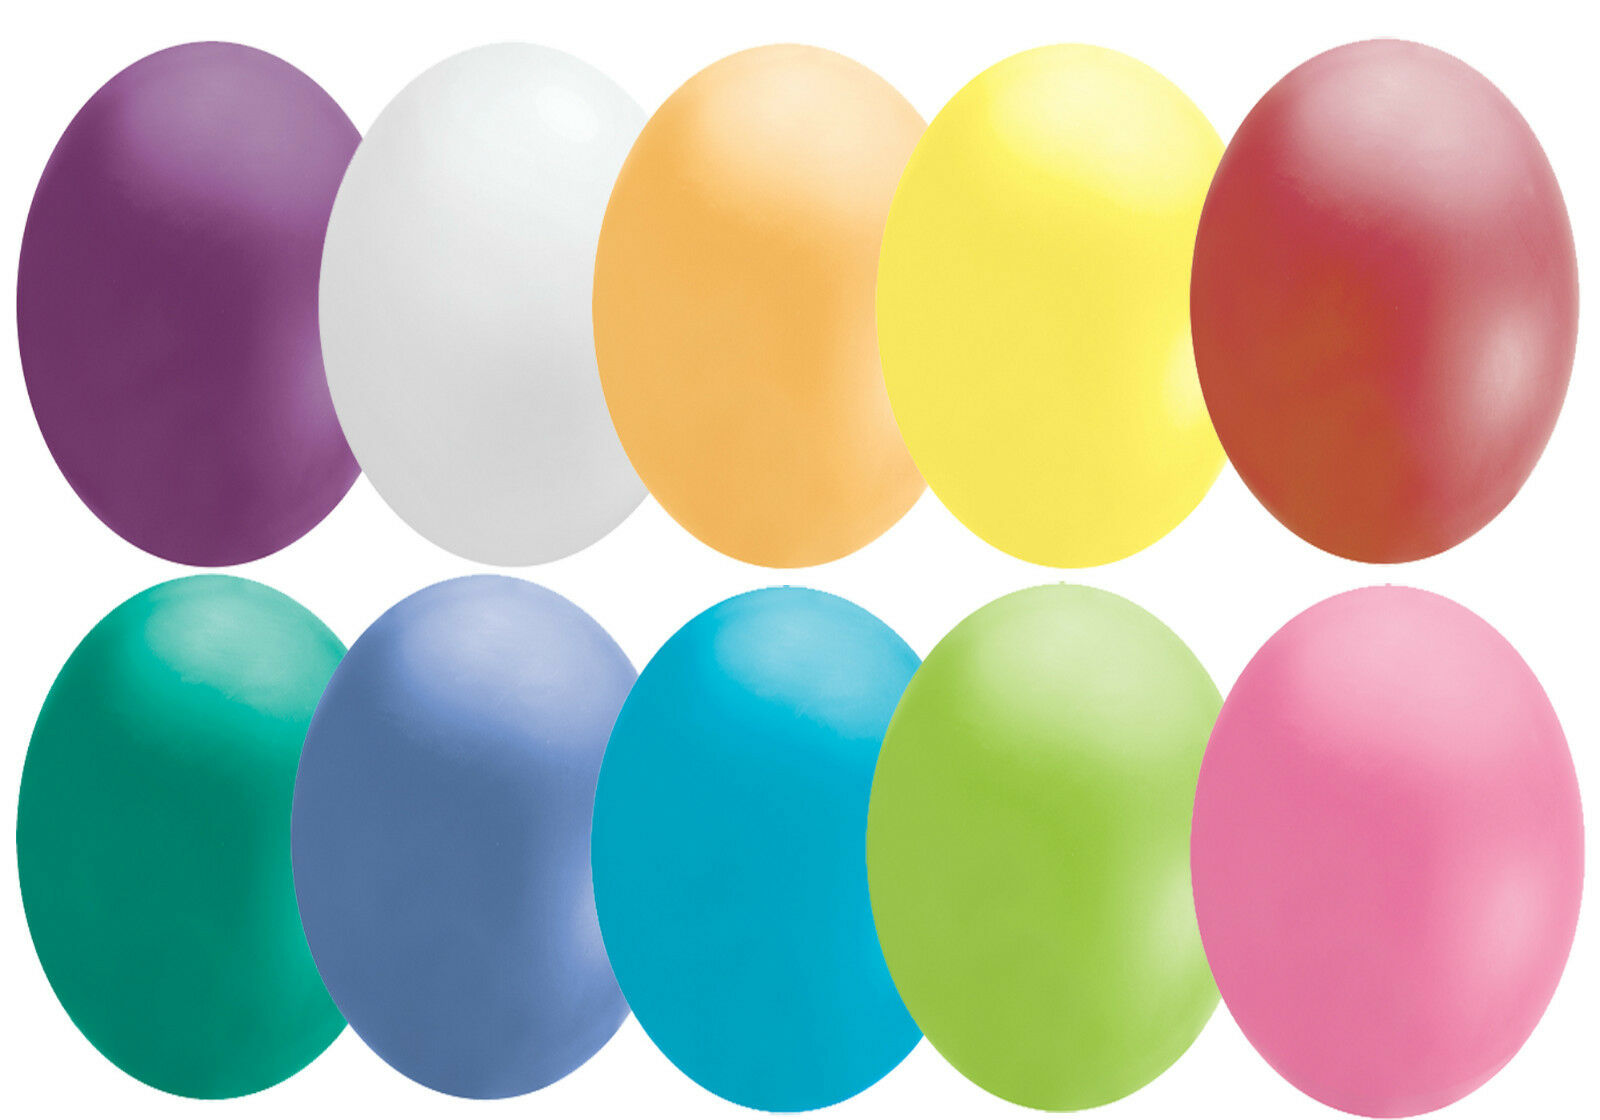 8ft Giant Cloudbuster Balloon Qualatex Party Decorations Outdoor Indoor Events